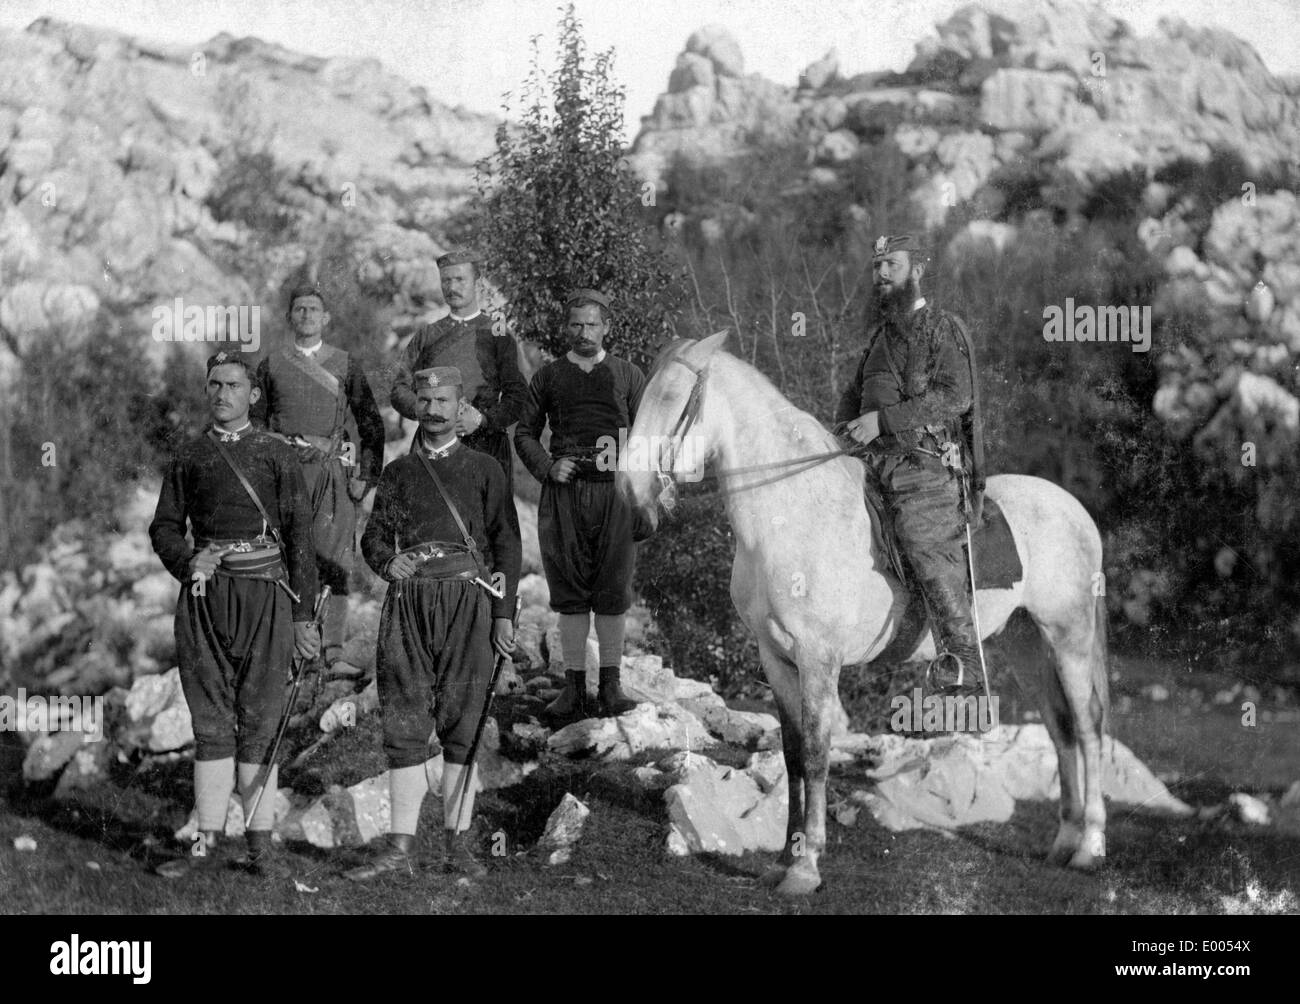 Montenegrin soldiers, 1899 - Stock Image